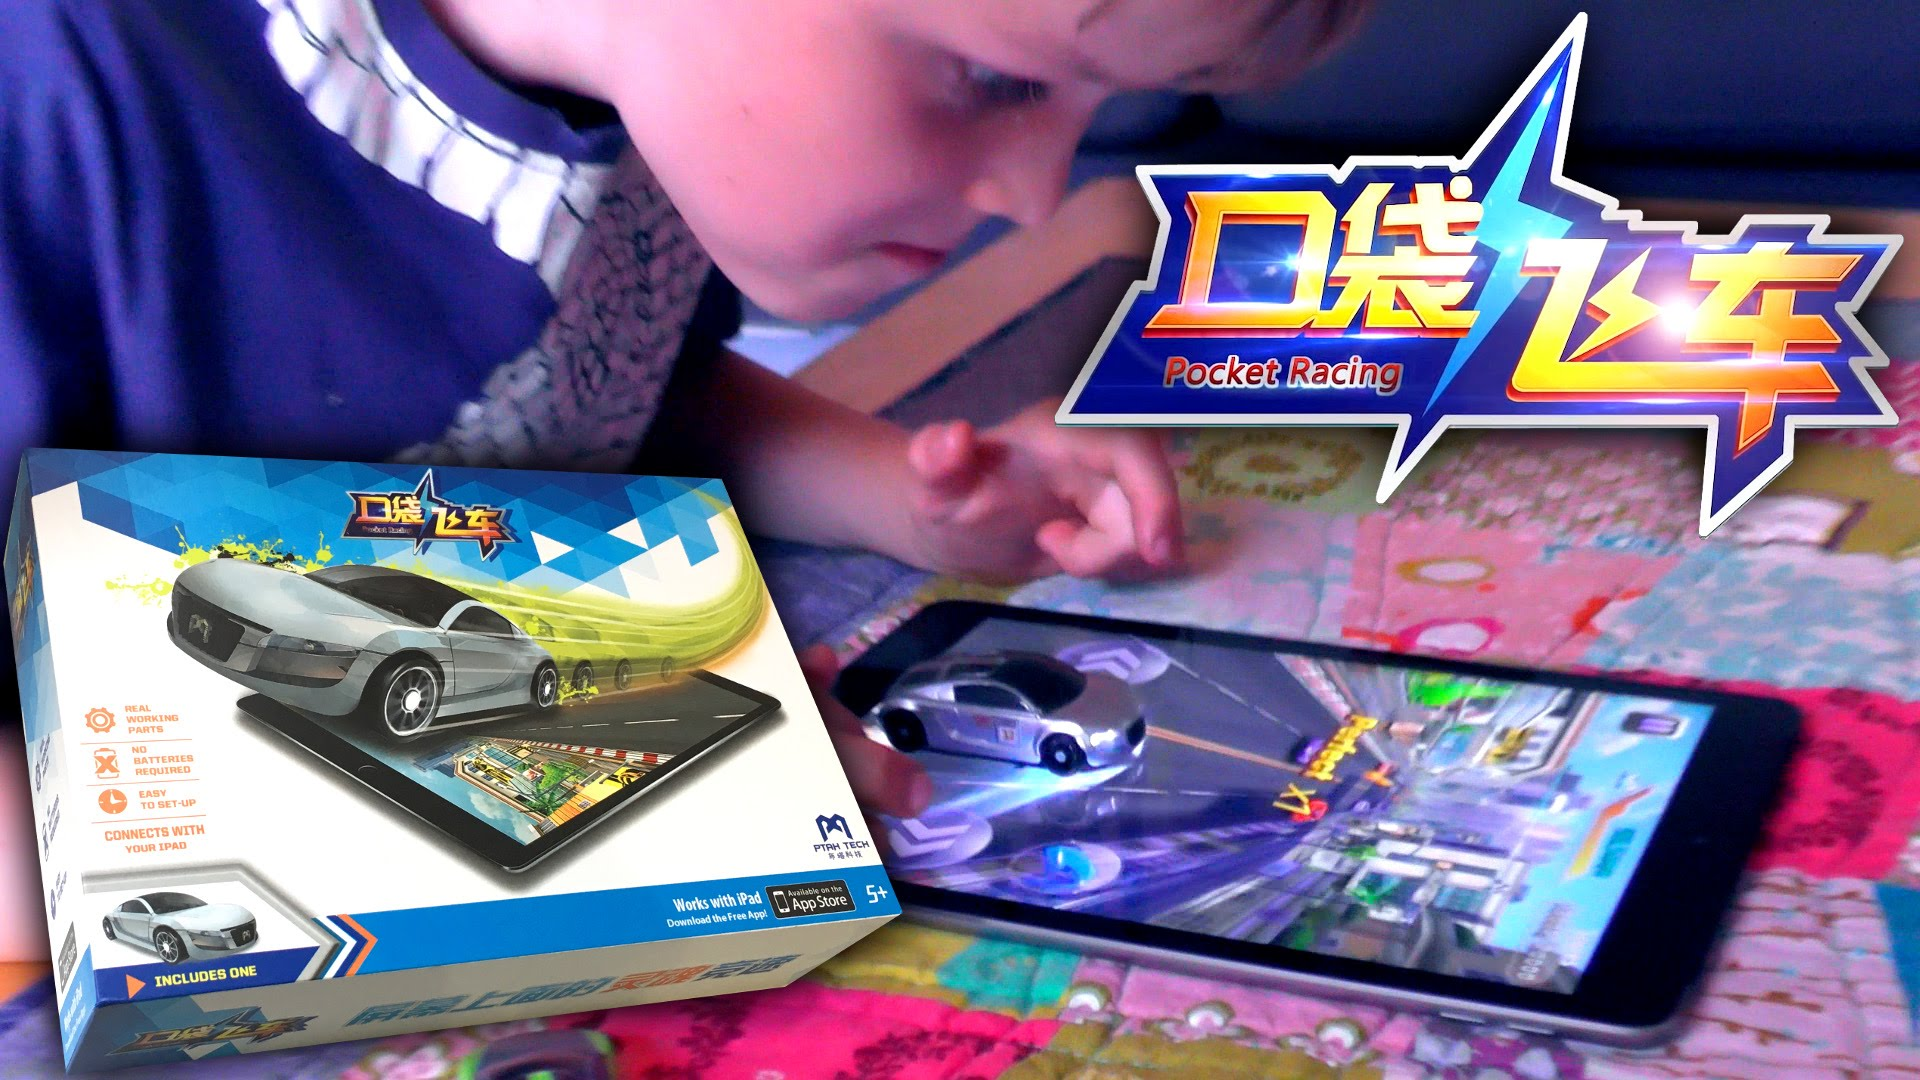 Pocket Racing 2.0 (2016) –  Real Toy Car Jumps/Explodes on iPad Game